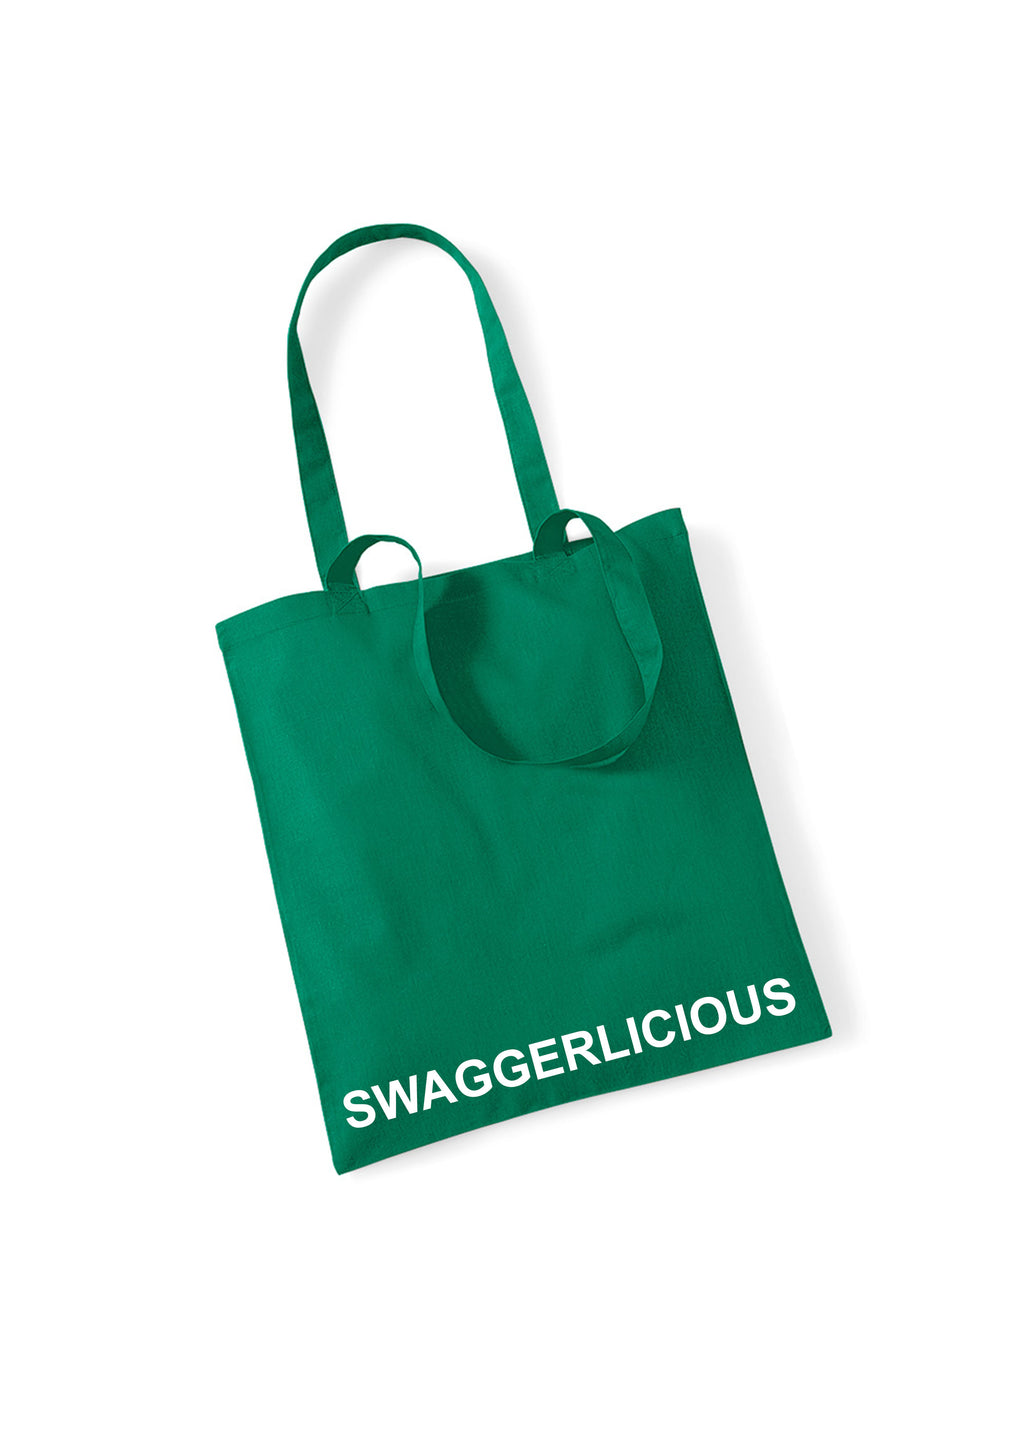 GREEN SWAGGERLICIOUS TOTE BAG - swaggerlicious-clothing.com